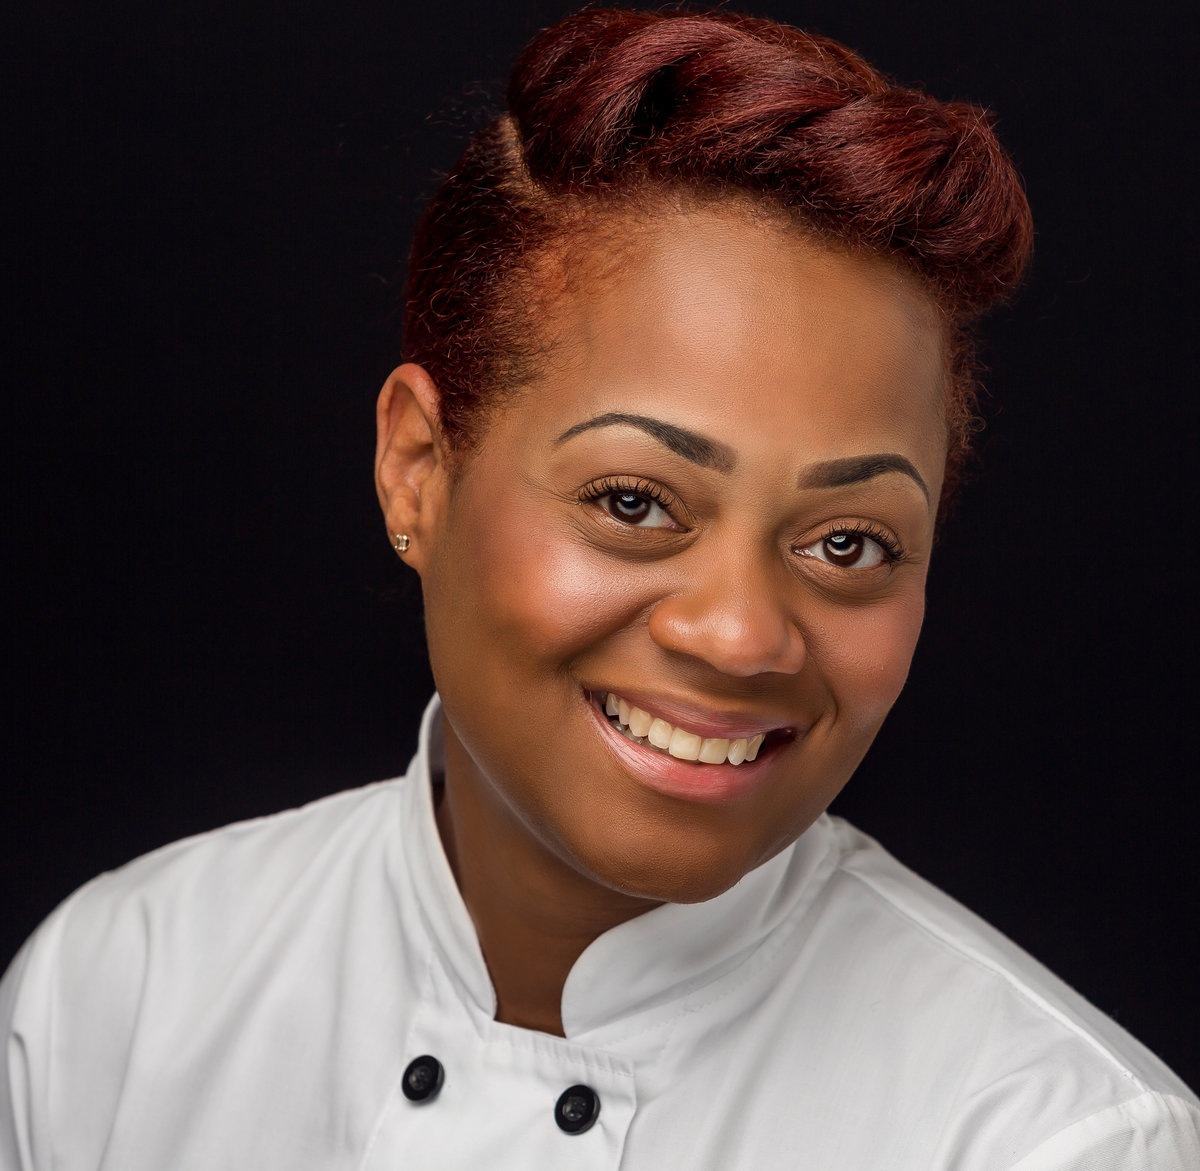 headshots-entrepreneur-chef-food-3